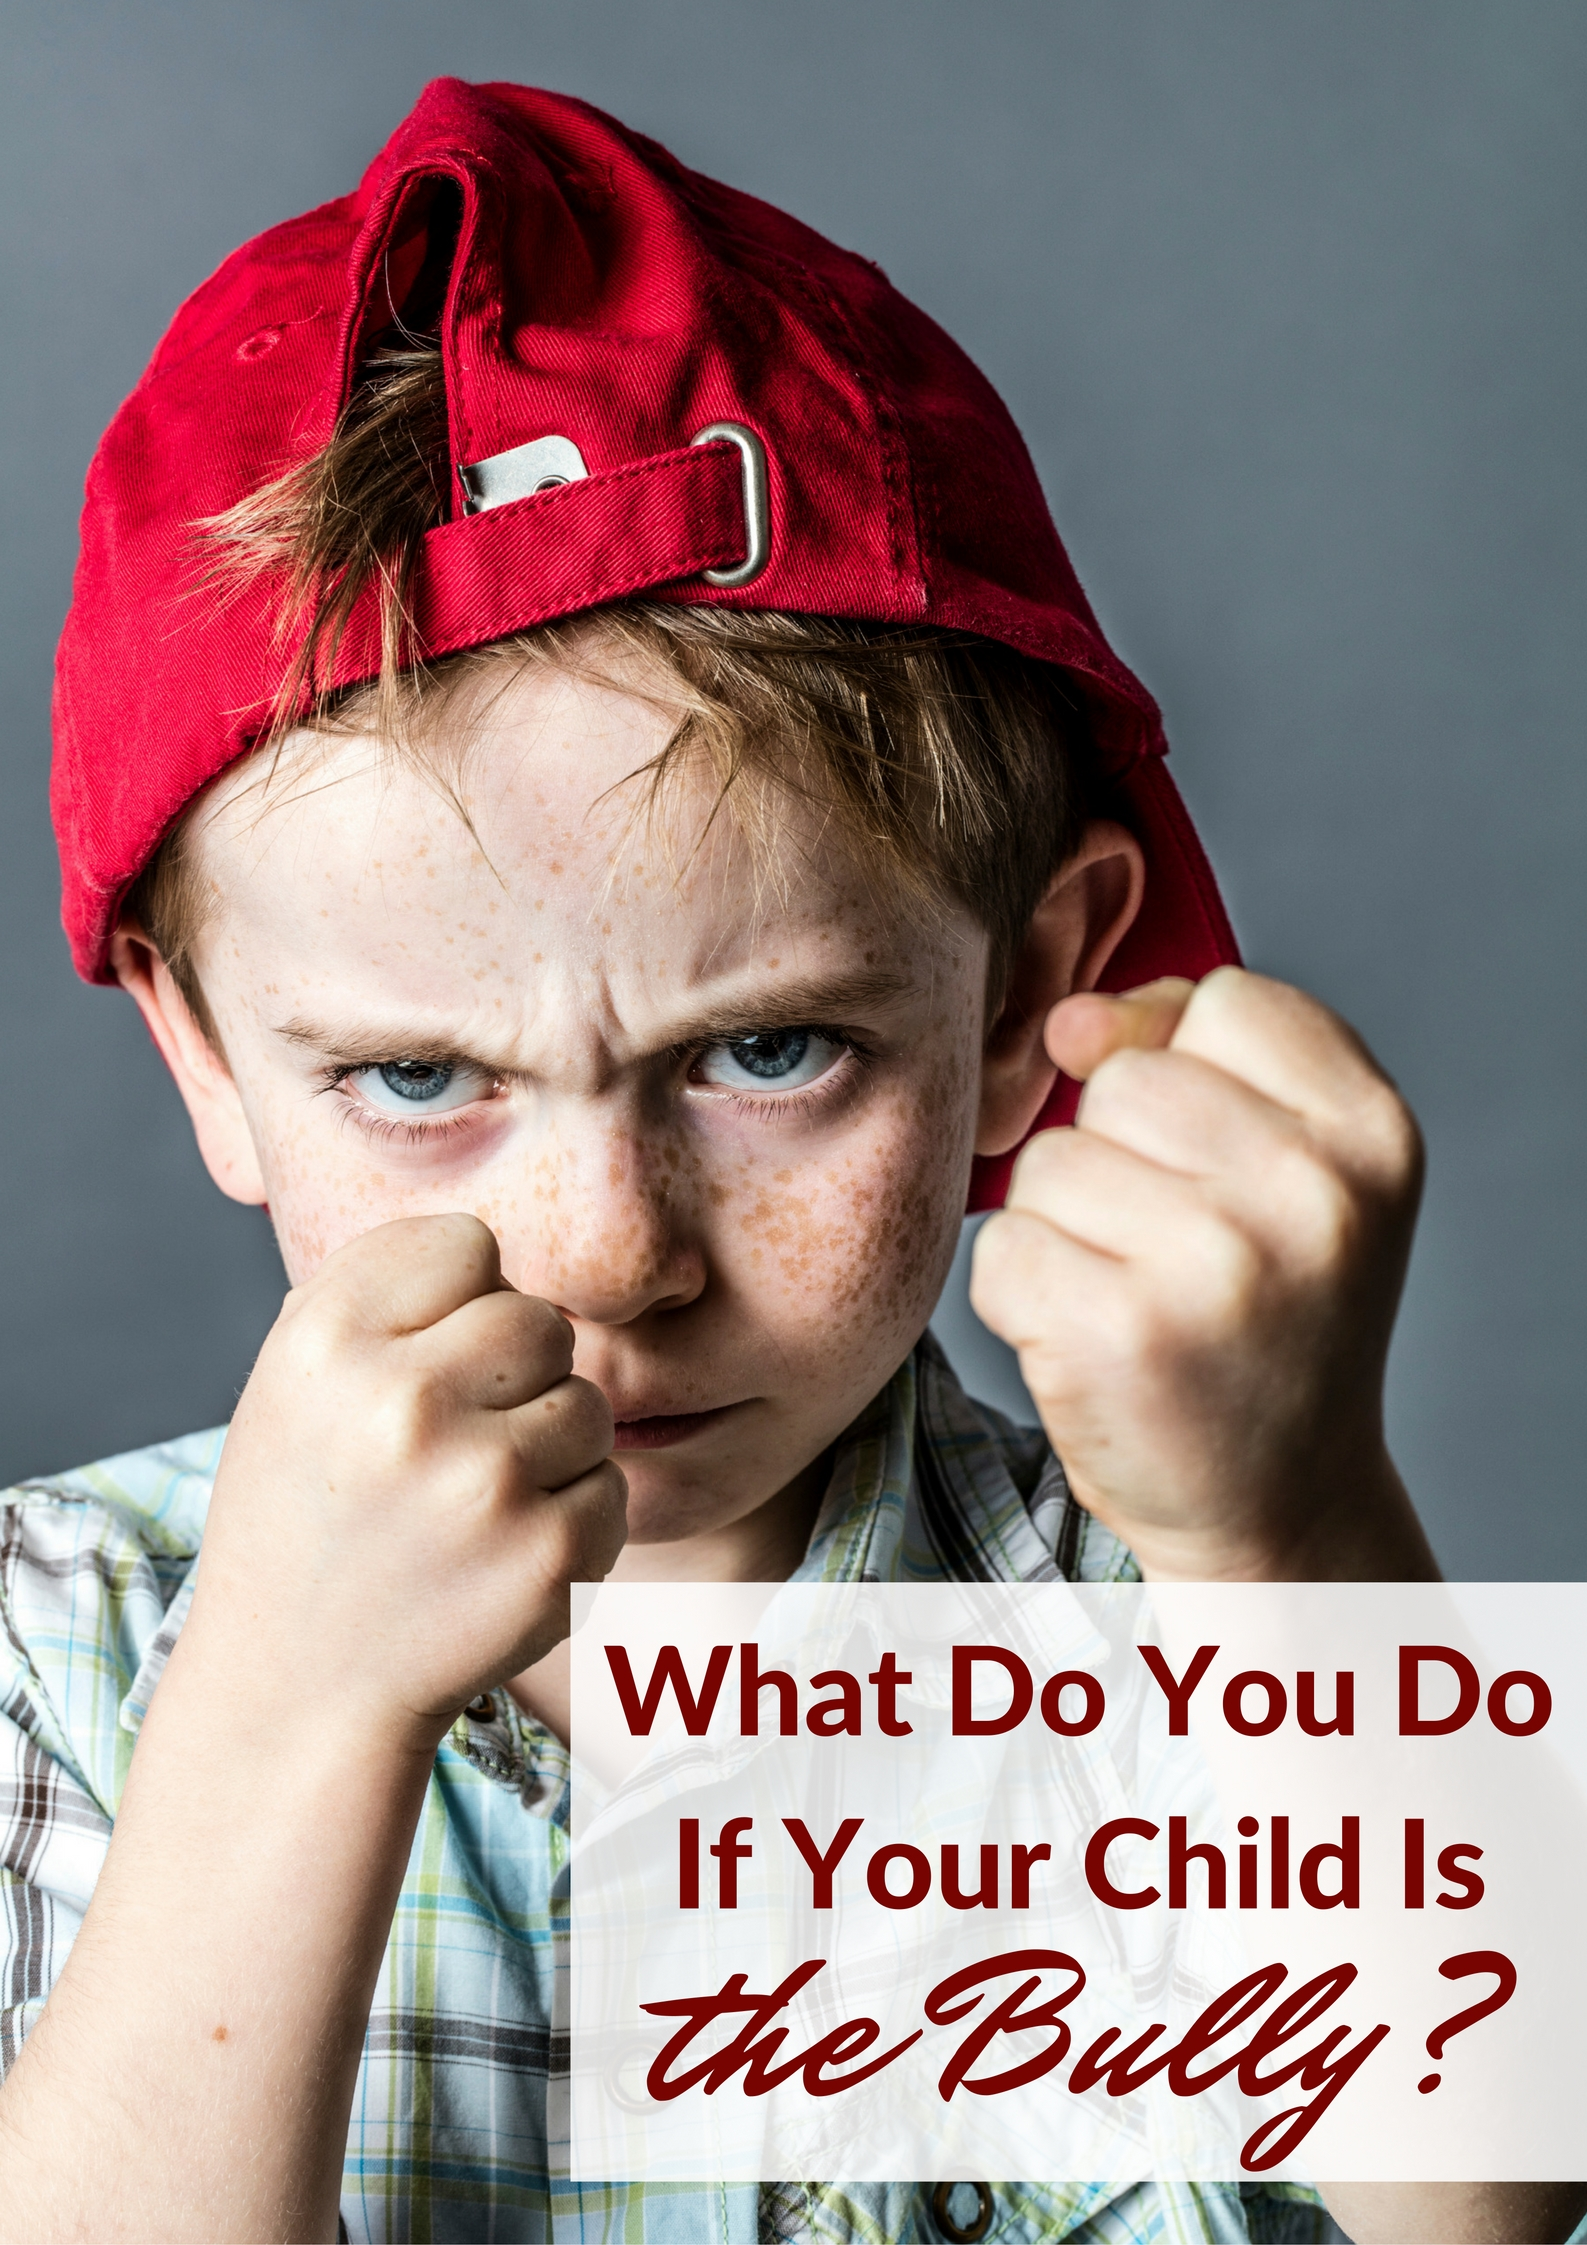 What Do You Do If Your Child Is the Bully?